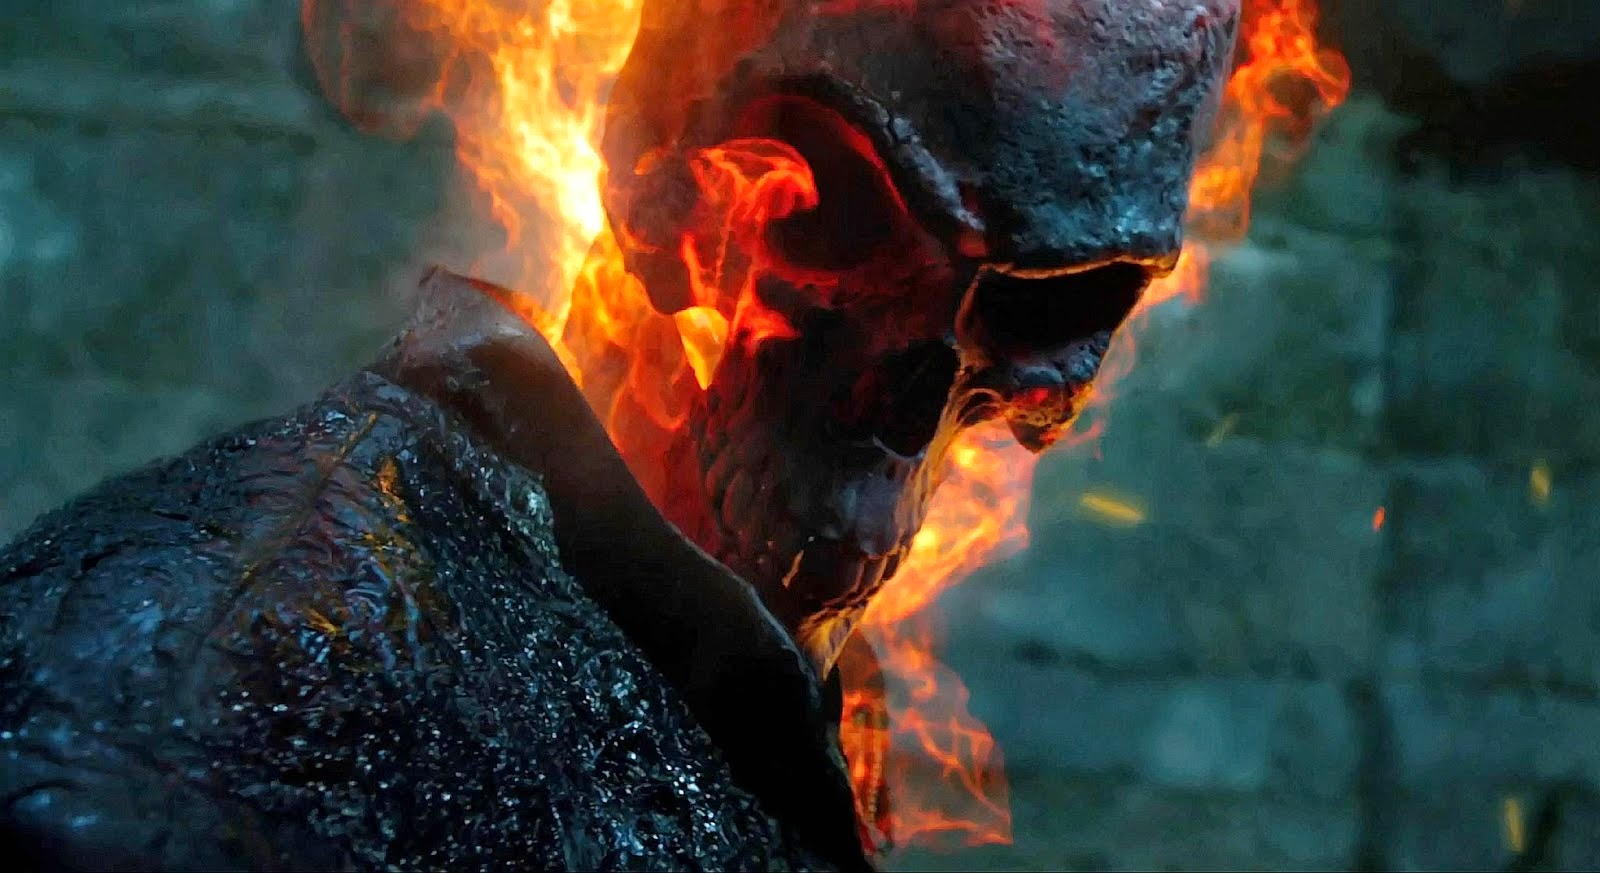 ghost rider wallpaper download | free | download